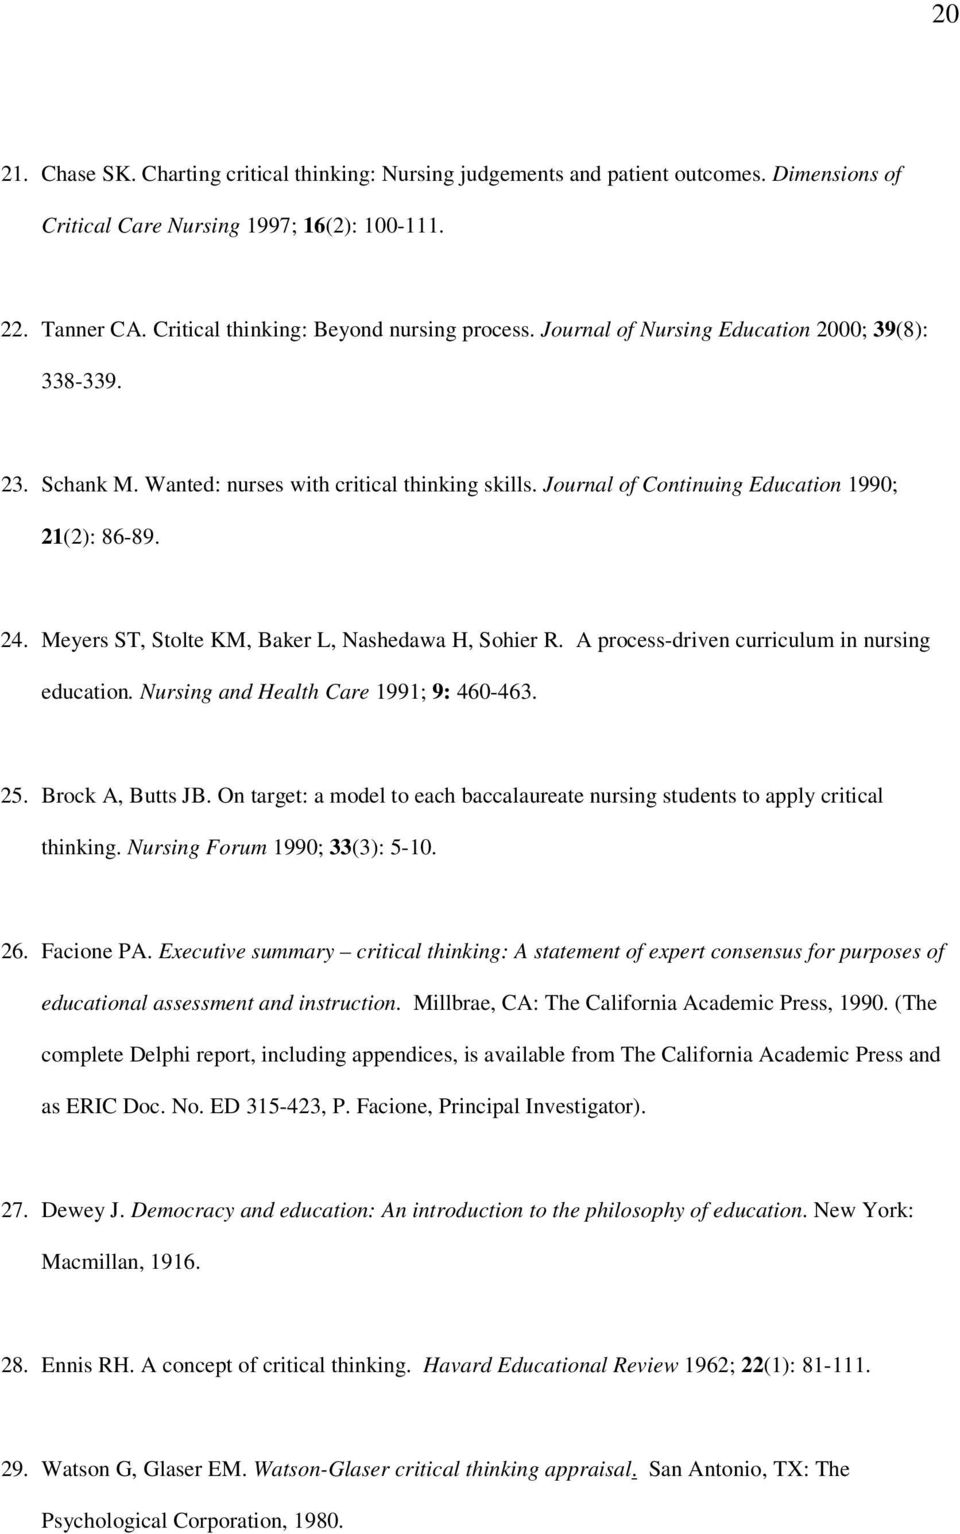 Journal of Continuing Education 1990; 21(2): 86-89. 24. Meyers ST, Stolte KM, Baker L, Nashedawa H, Sohier R. A process-driven curriculum in nursing education.